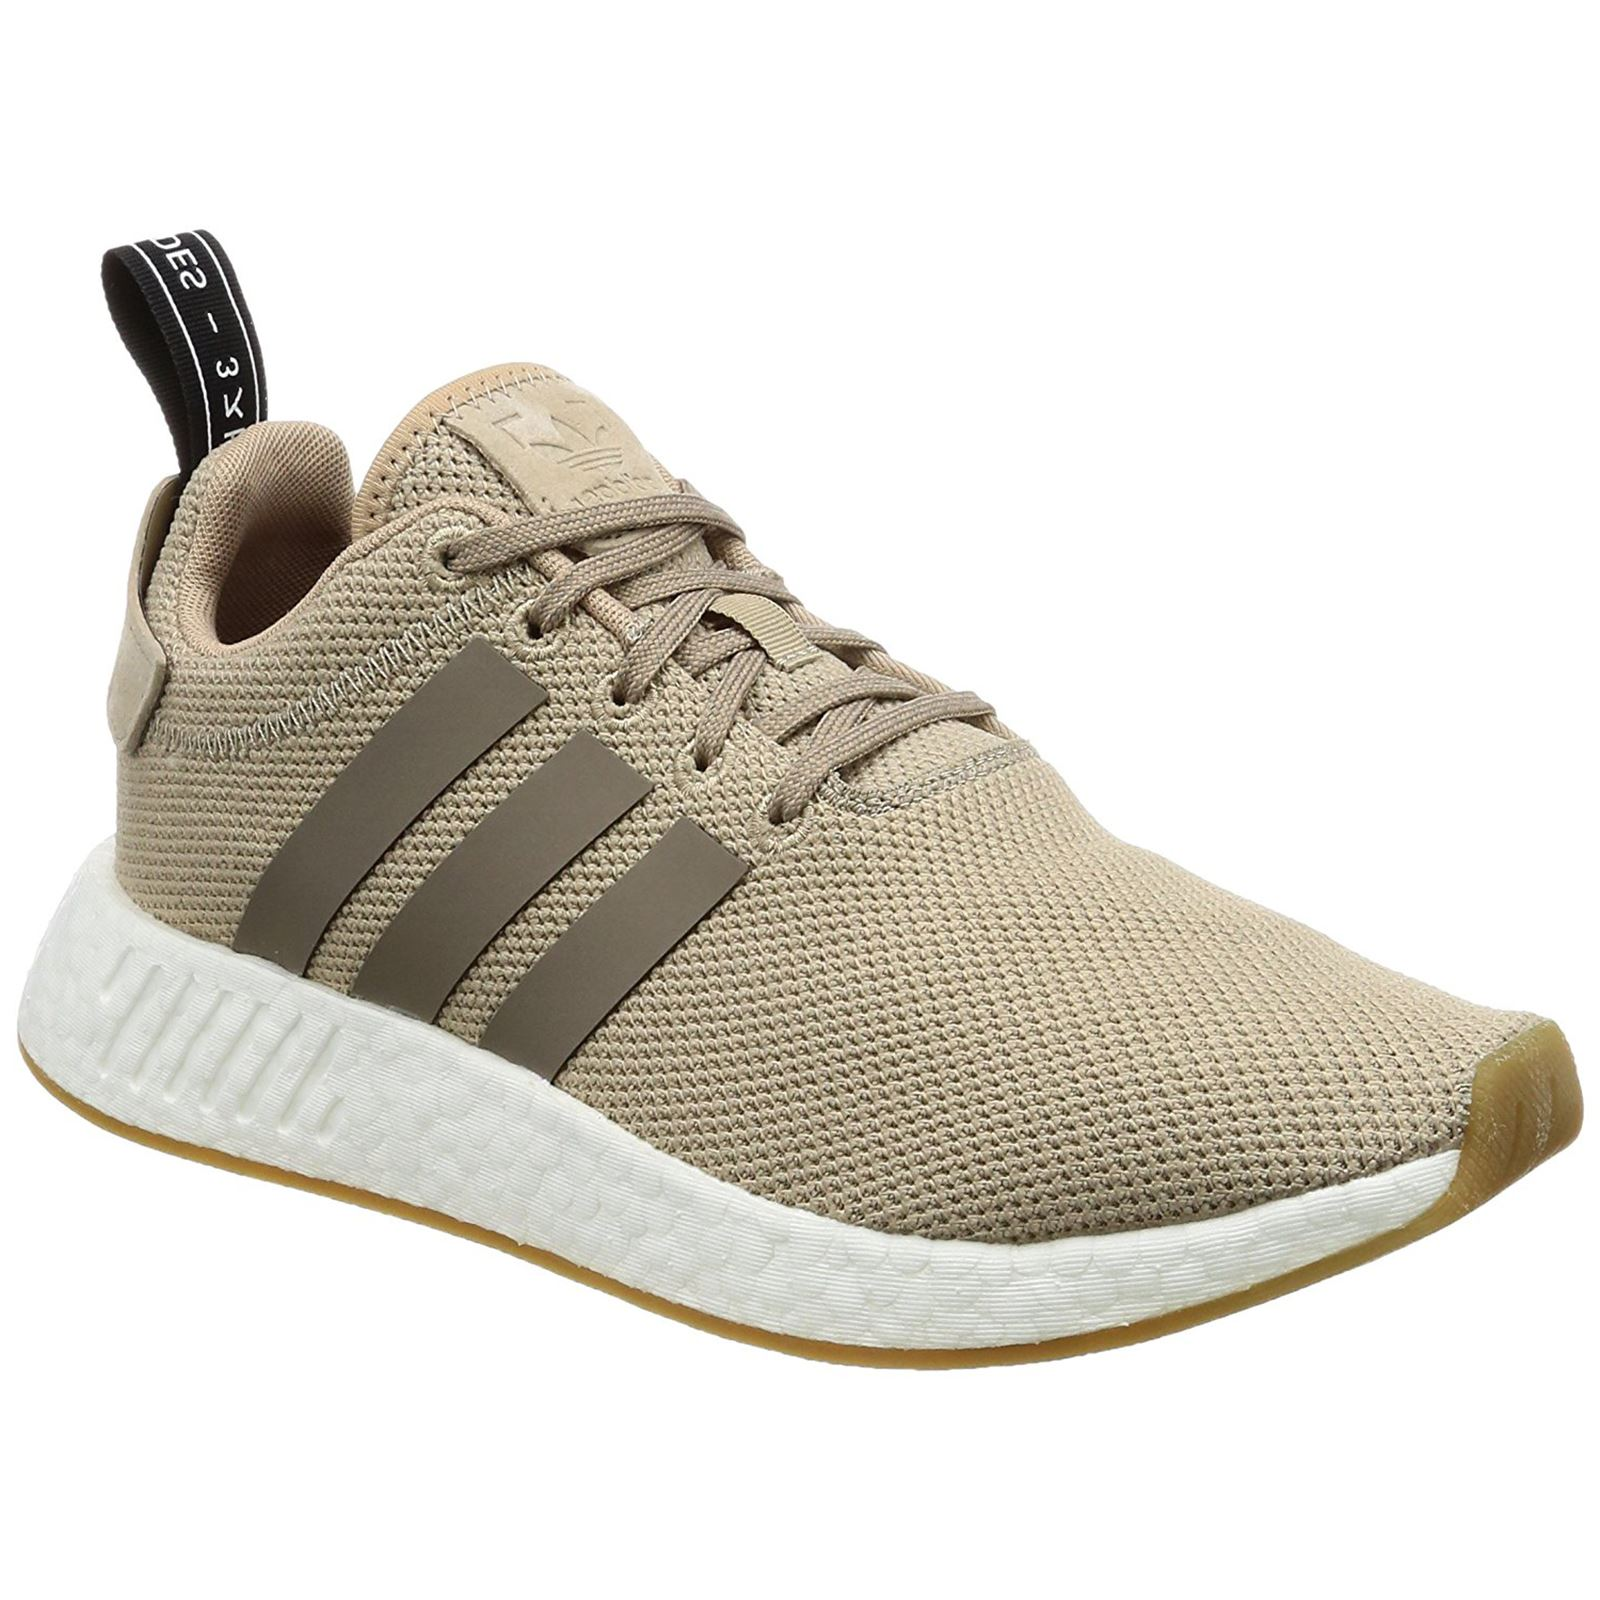 670be252981c Adidas NMD R2 Beige Trace Khaki Mens Low-top Sneakers Boost Trainers ...